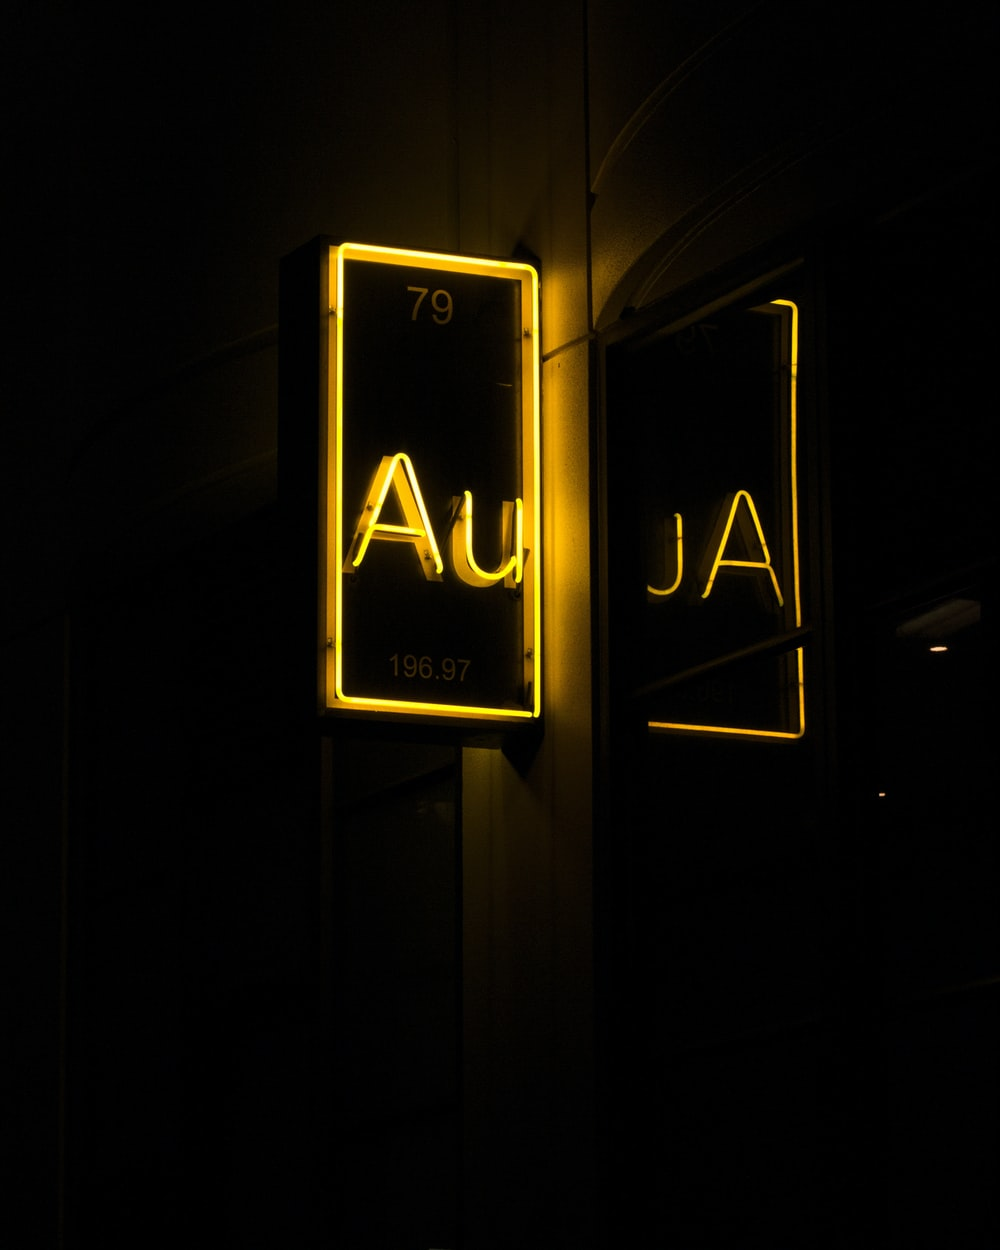 yellow Au neon light signage